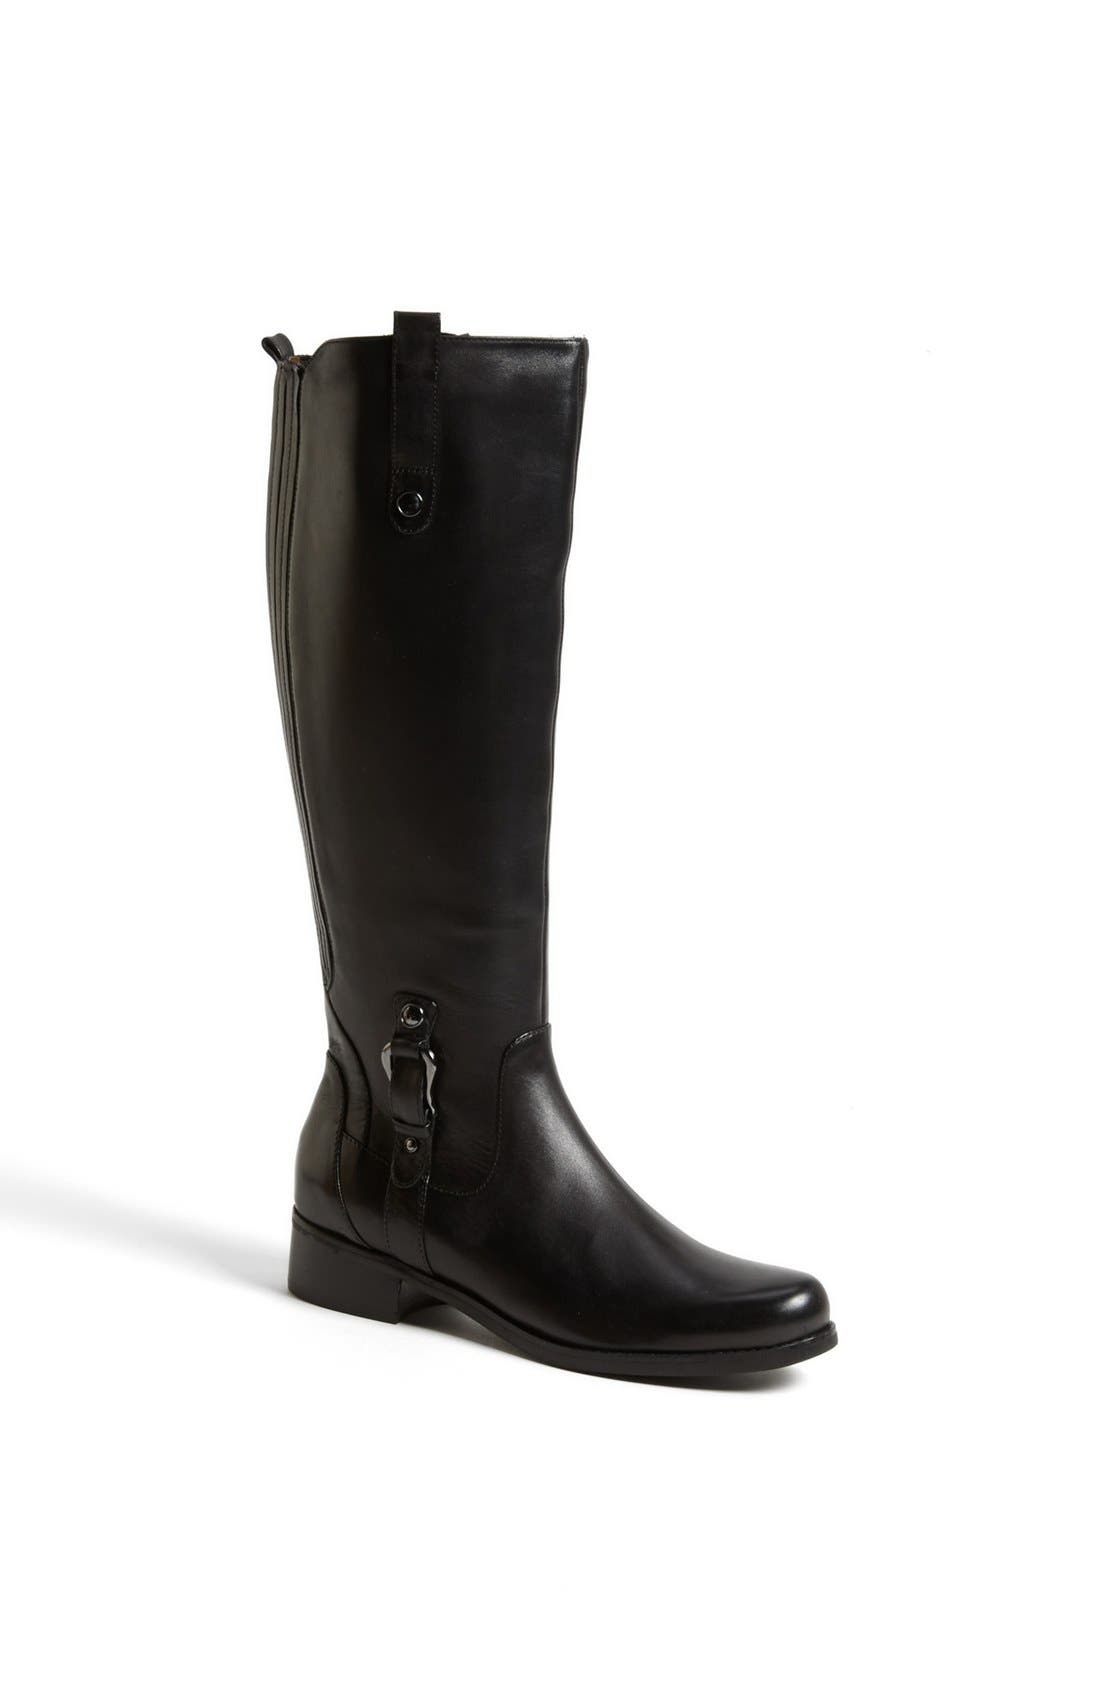 BLONDO 'Venise' Waterproof Leather Riding Boot